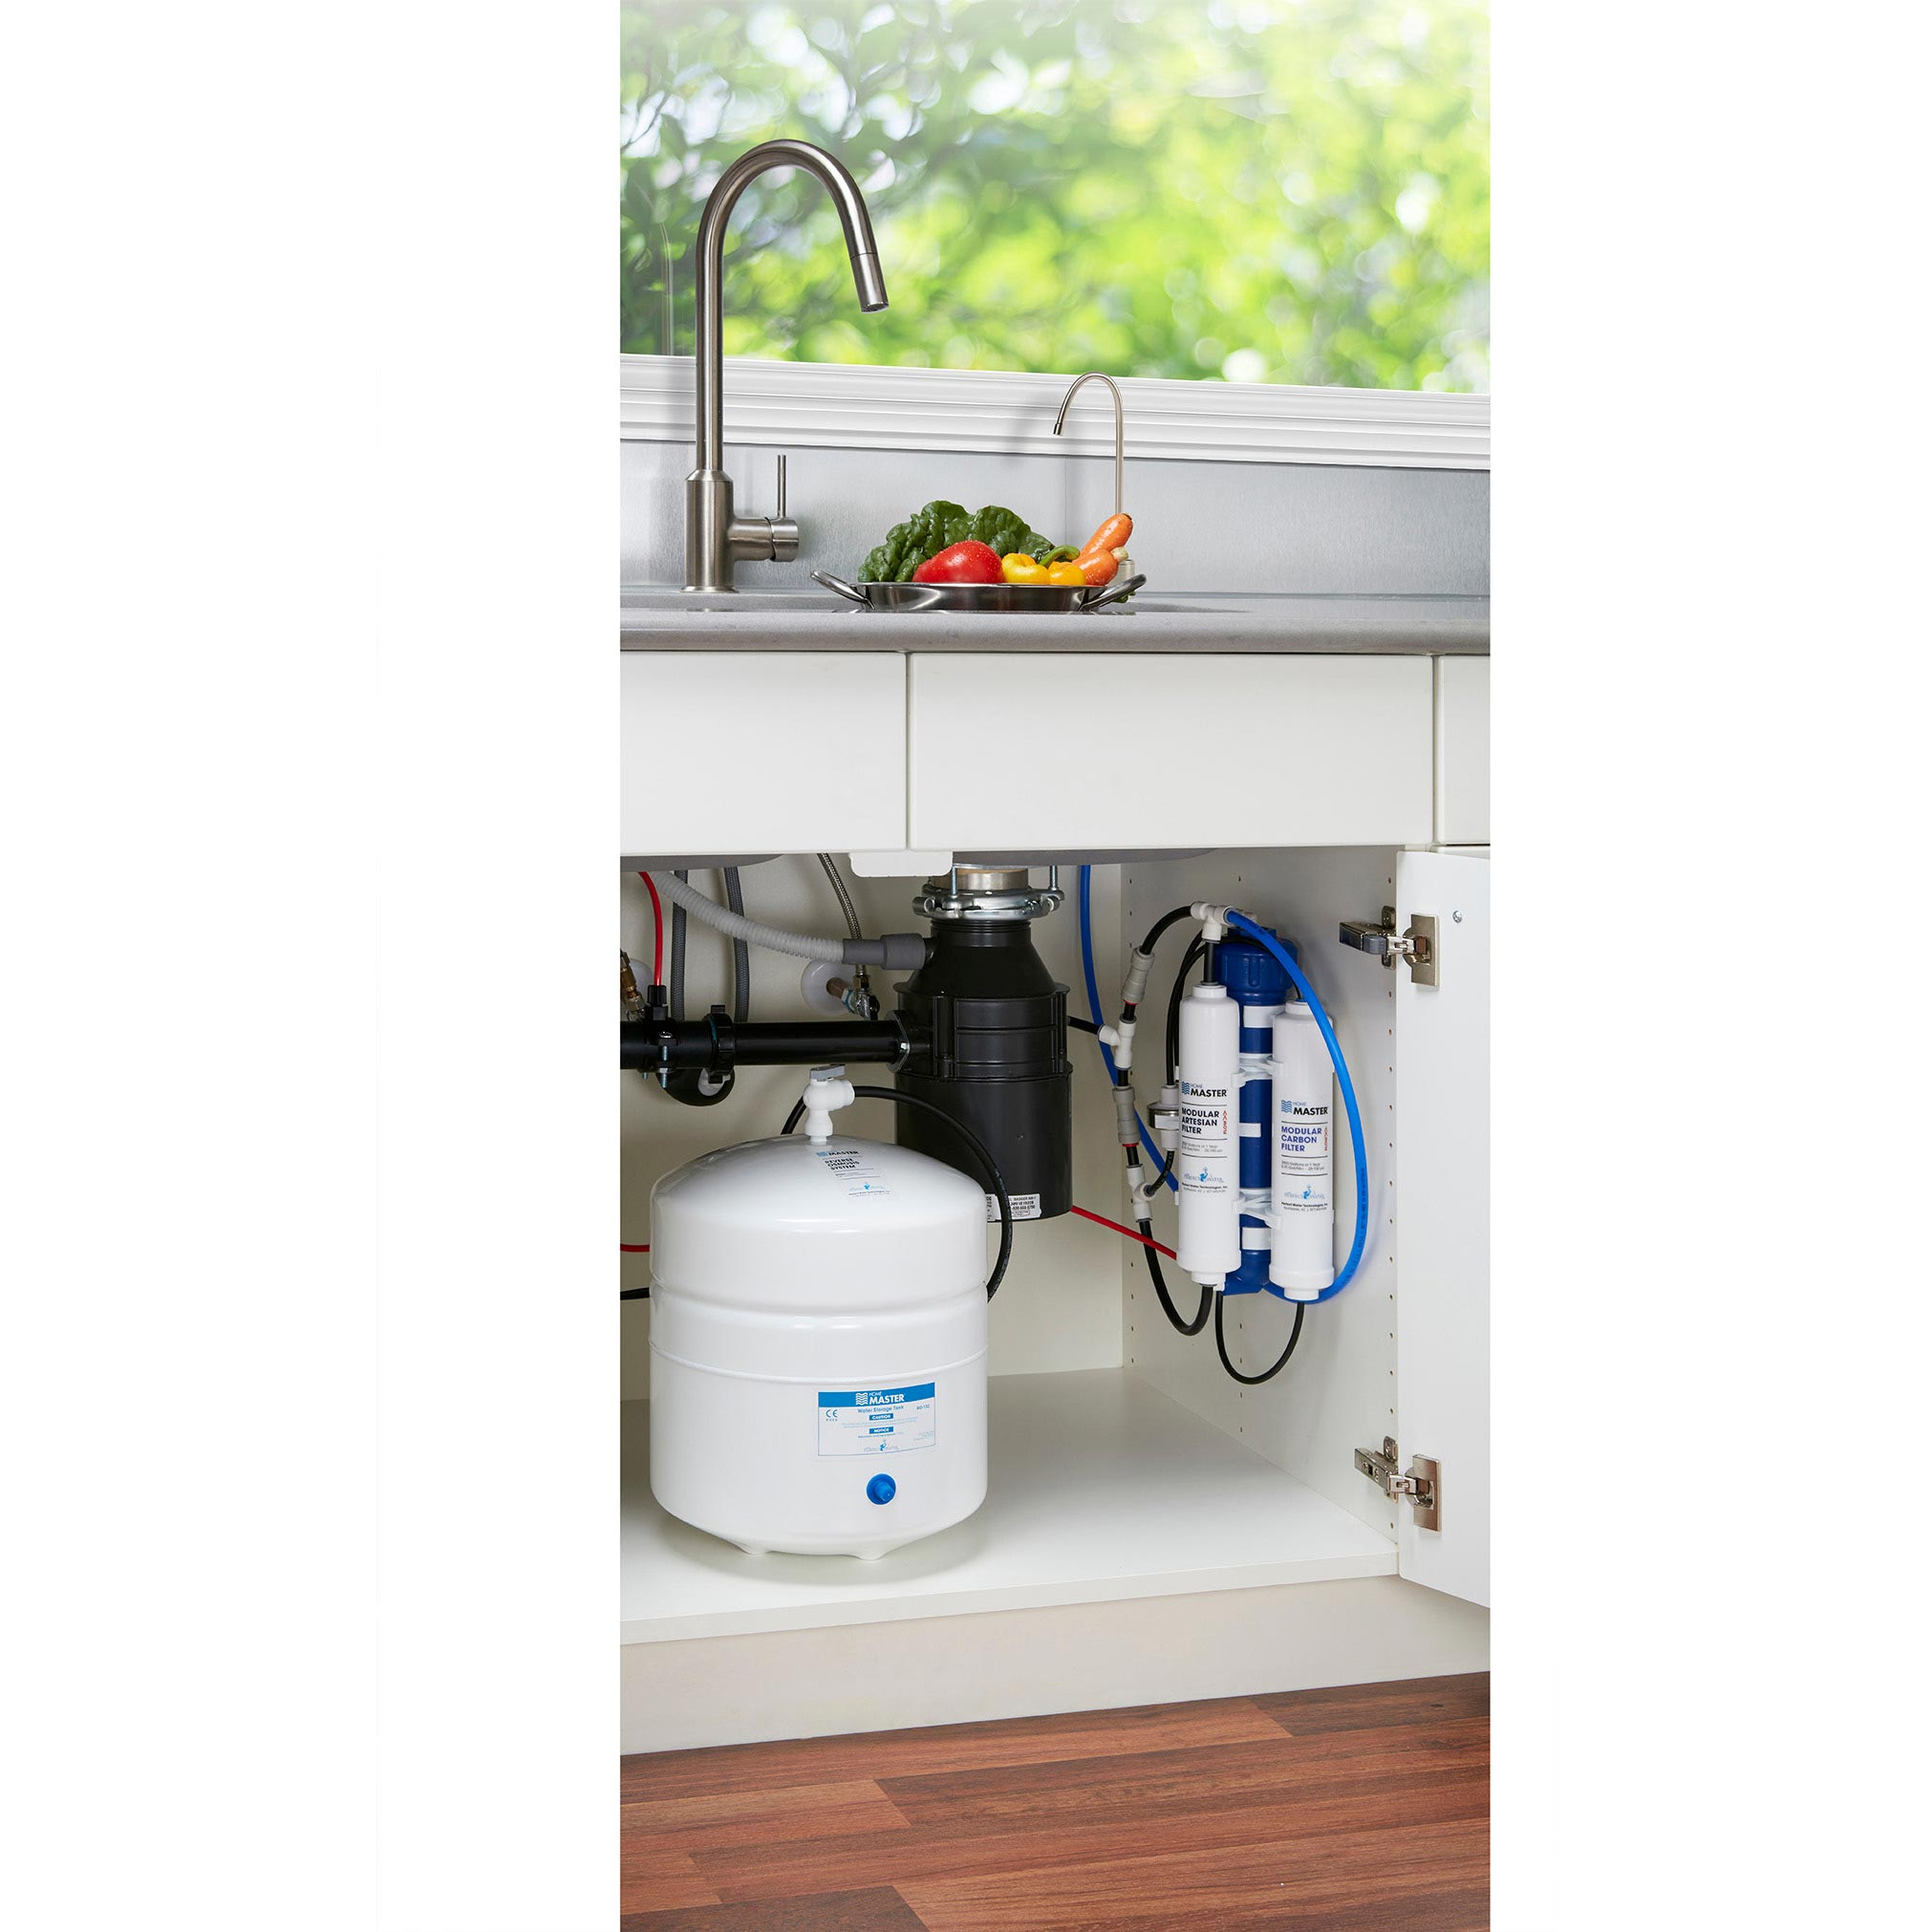 Home Master Reverse Osmosis Water Filtration System Installed Under Kitchen Sink